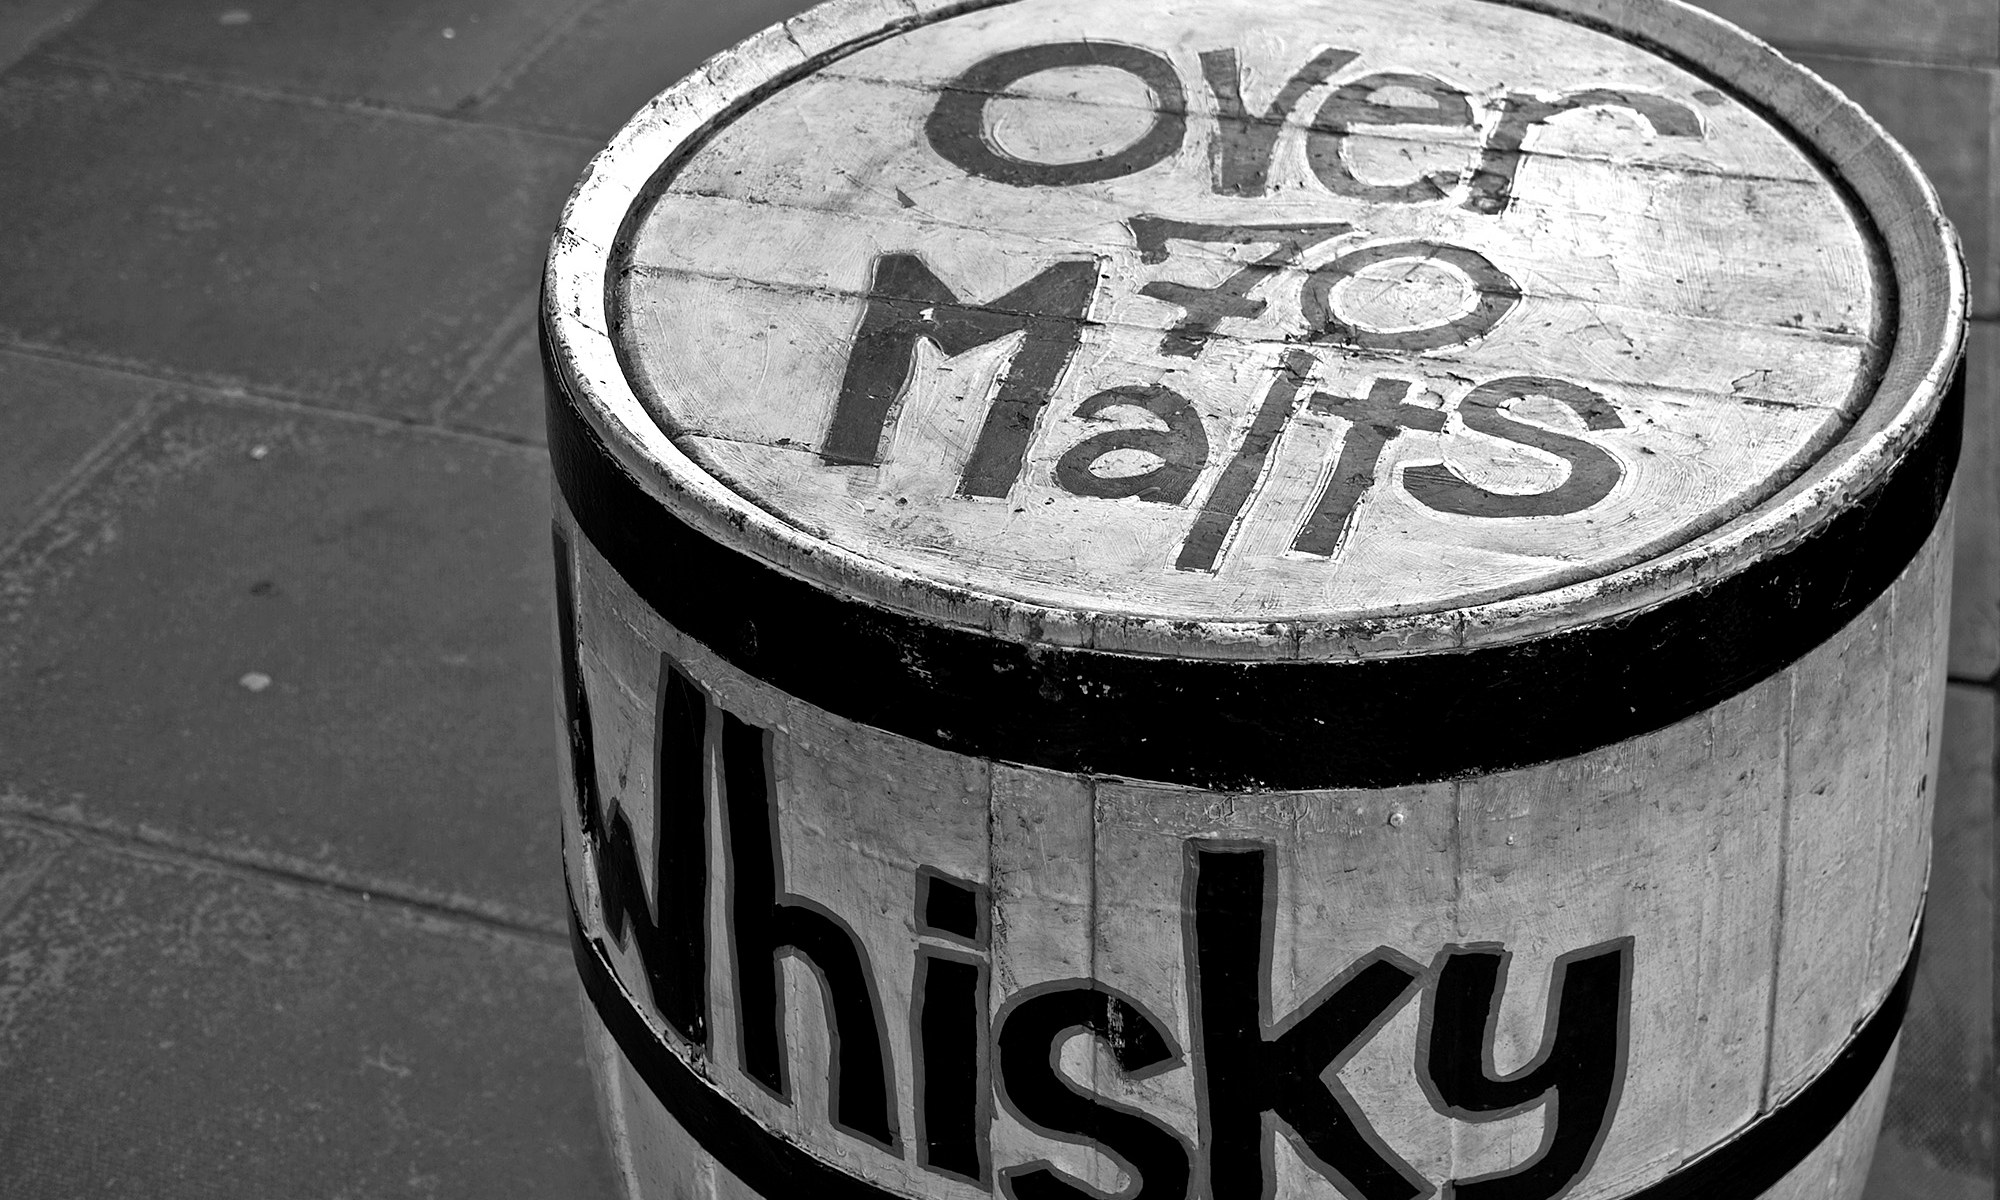 Whisky Barrel in Black & White